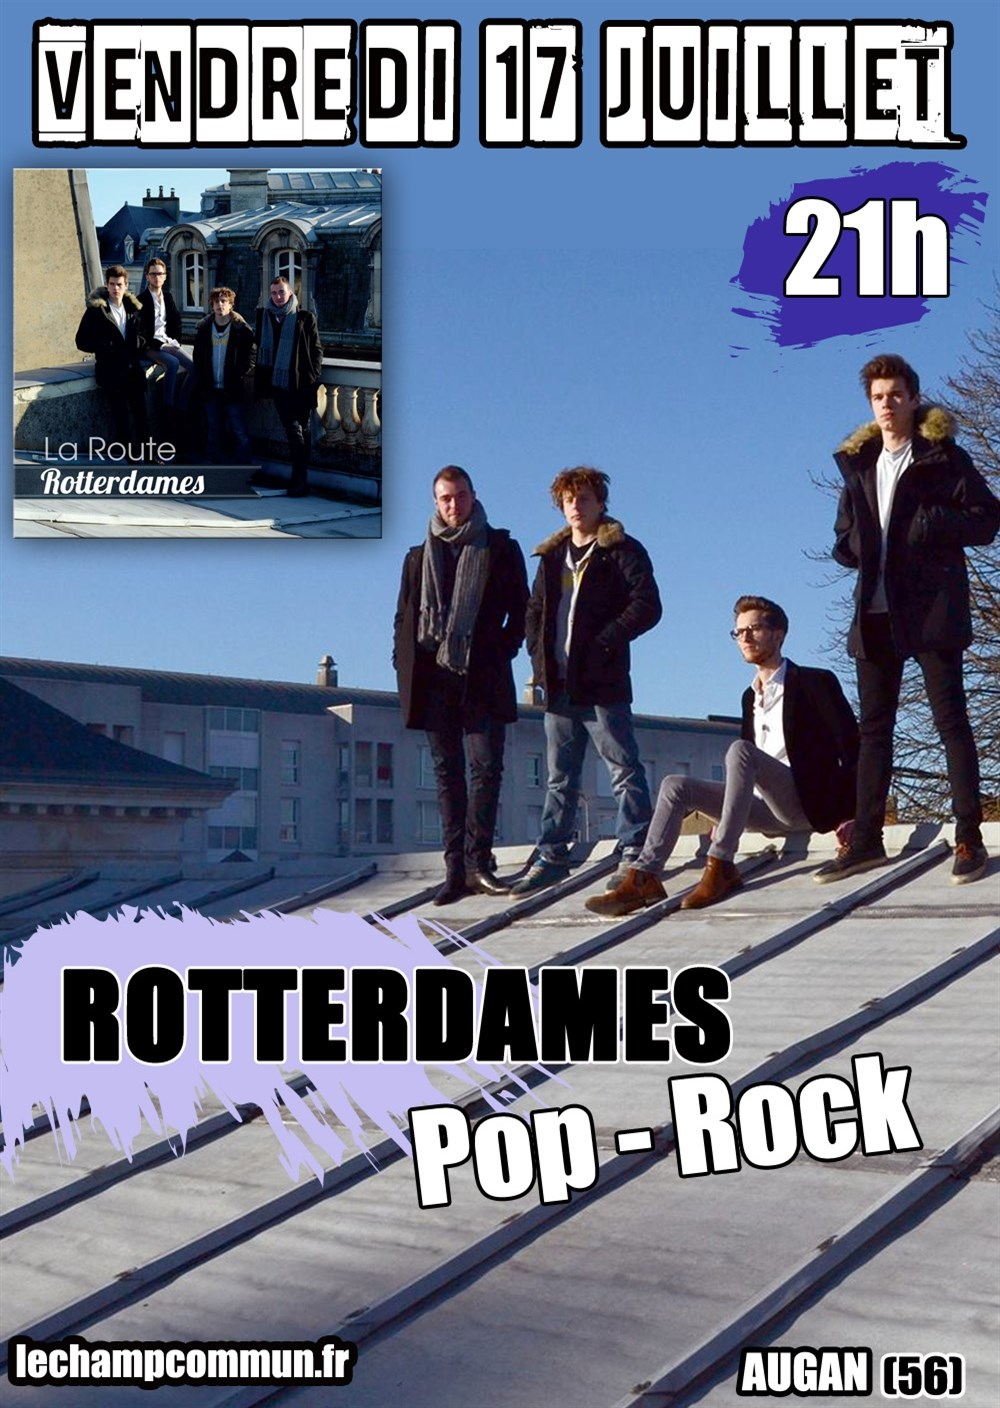 Rotterdames - pop rock Augan